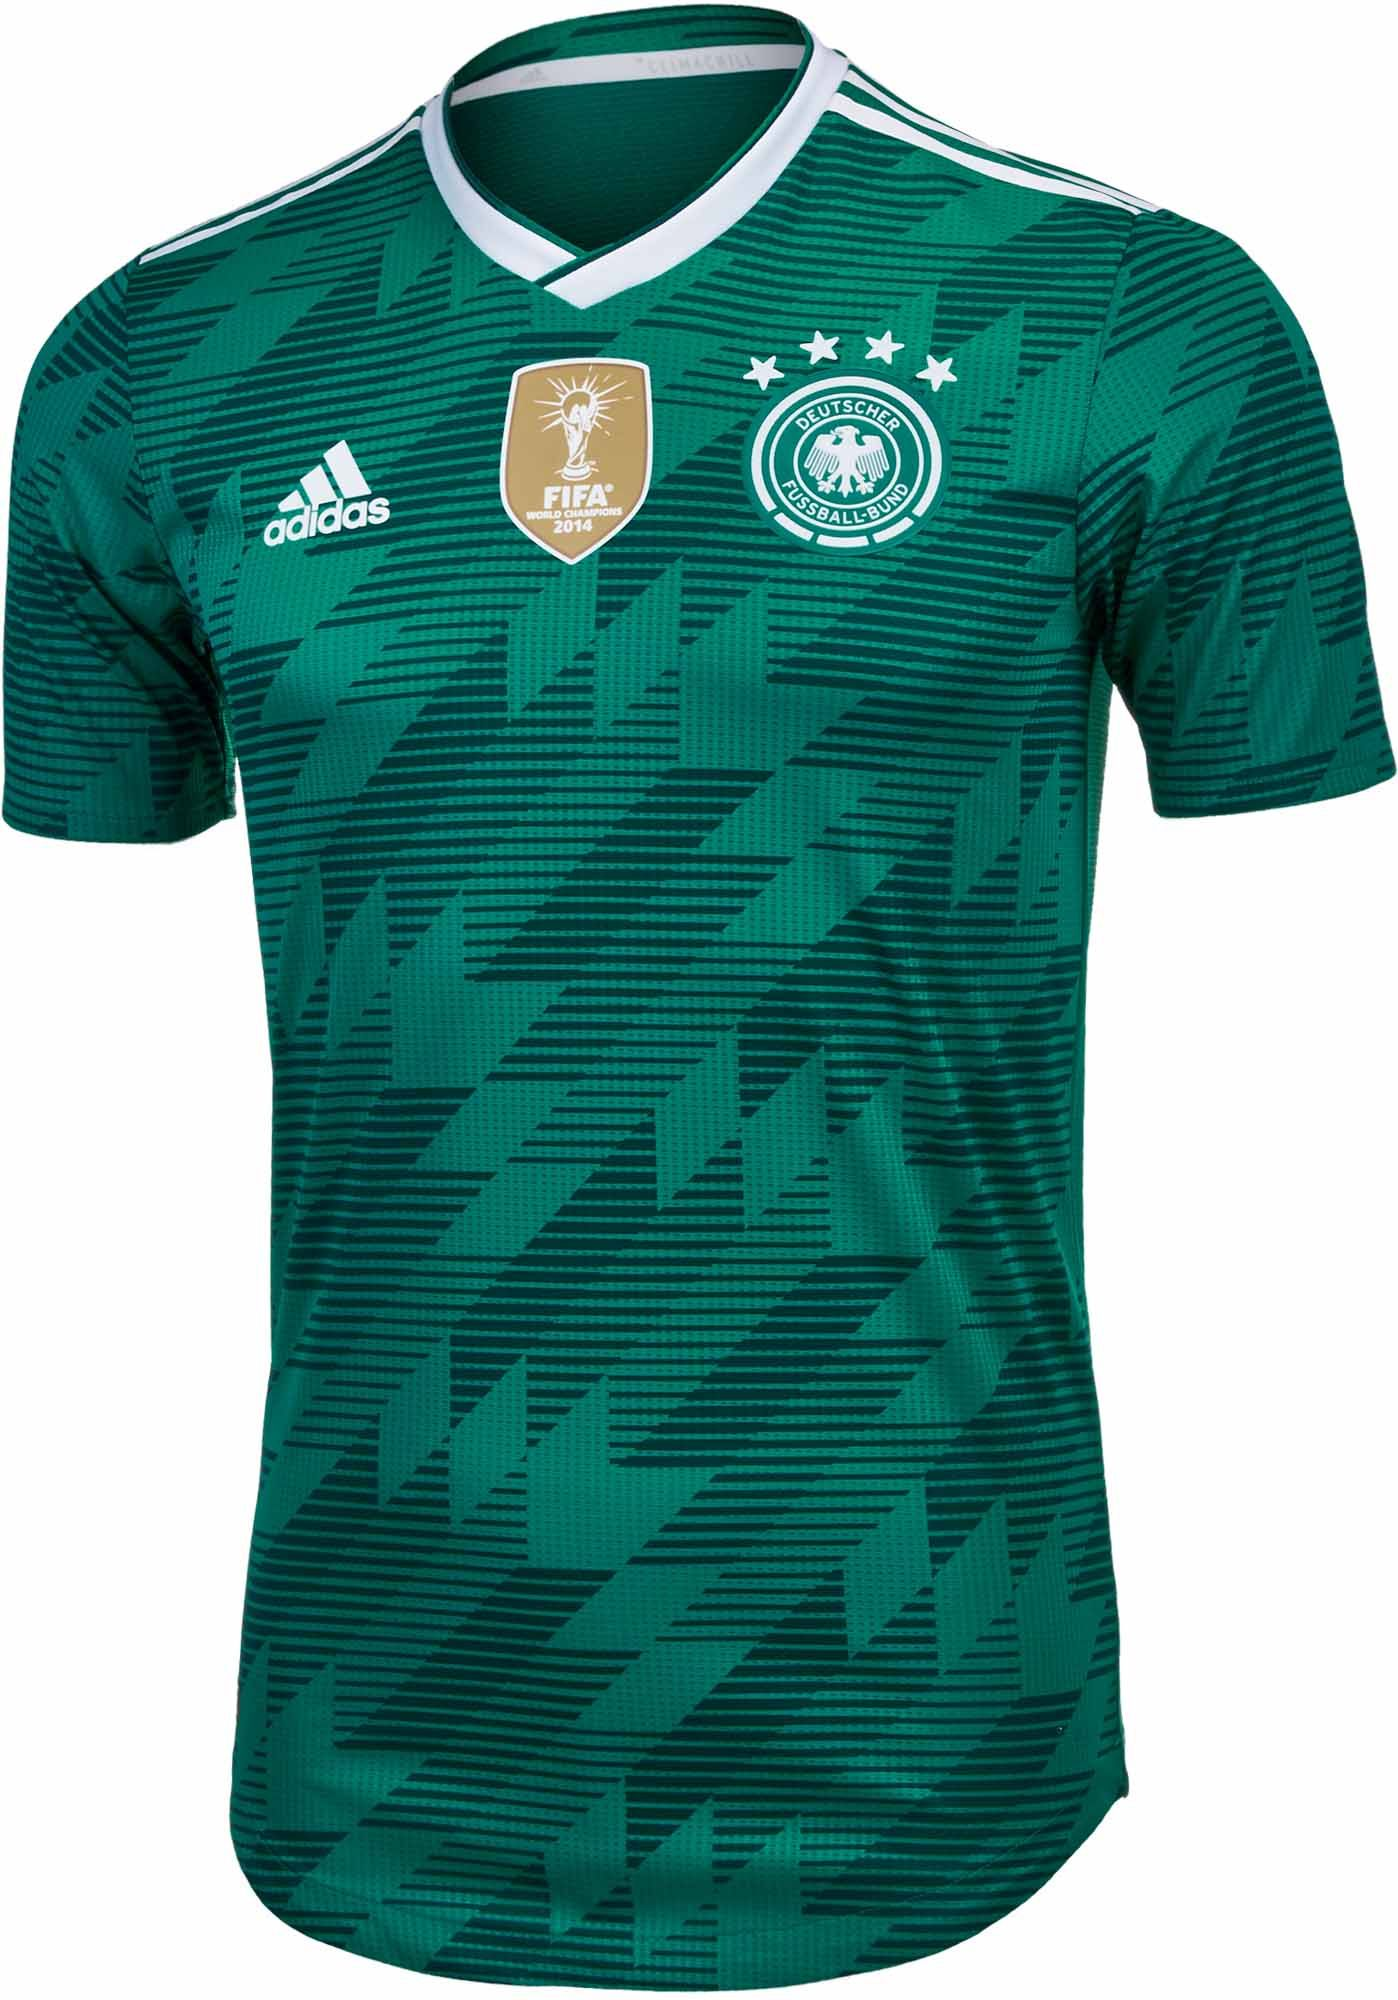 Buy the 2018 19 adidas Germany Authentic Away Jersey from www.soccerpro.com 4bff4a1cd